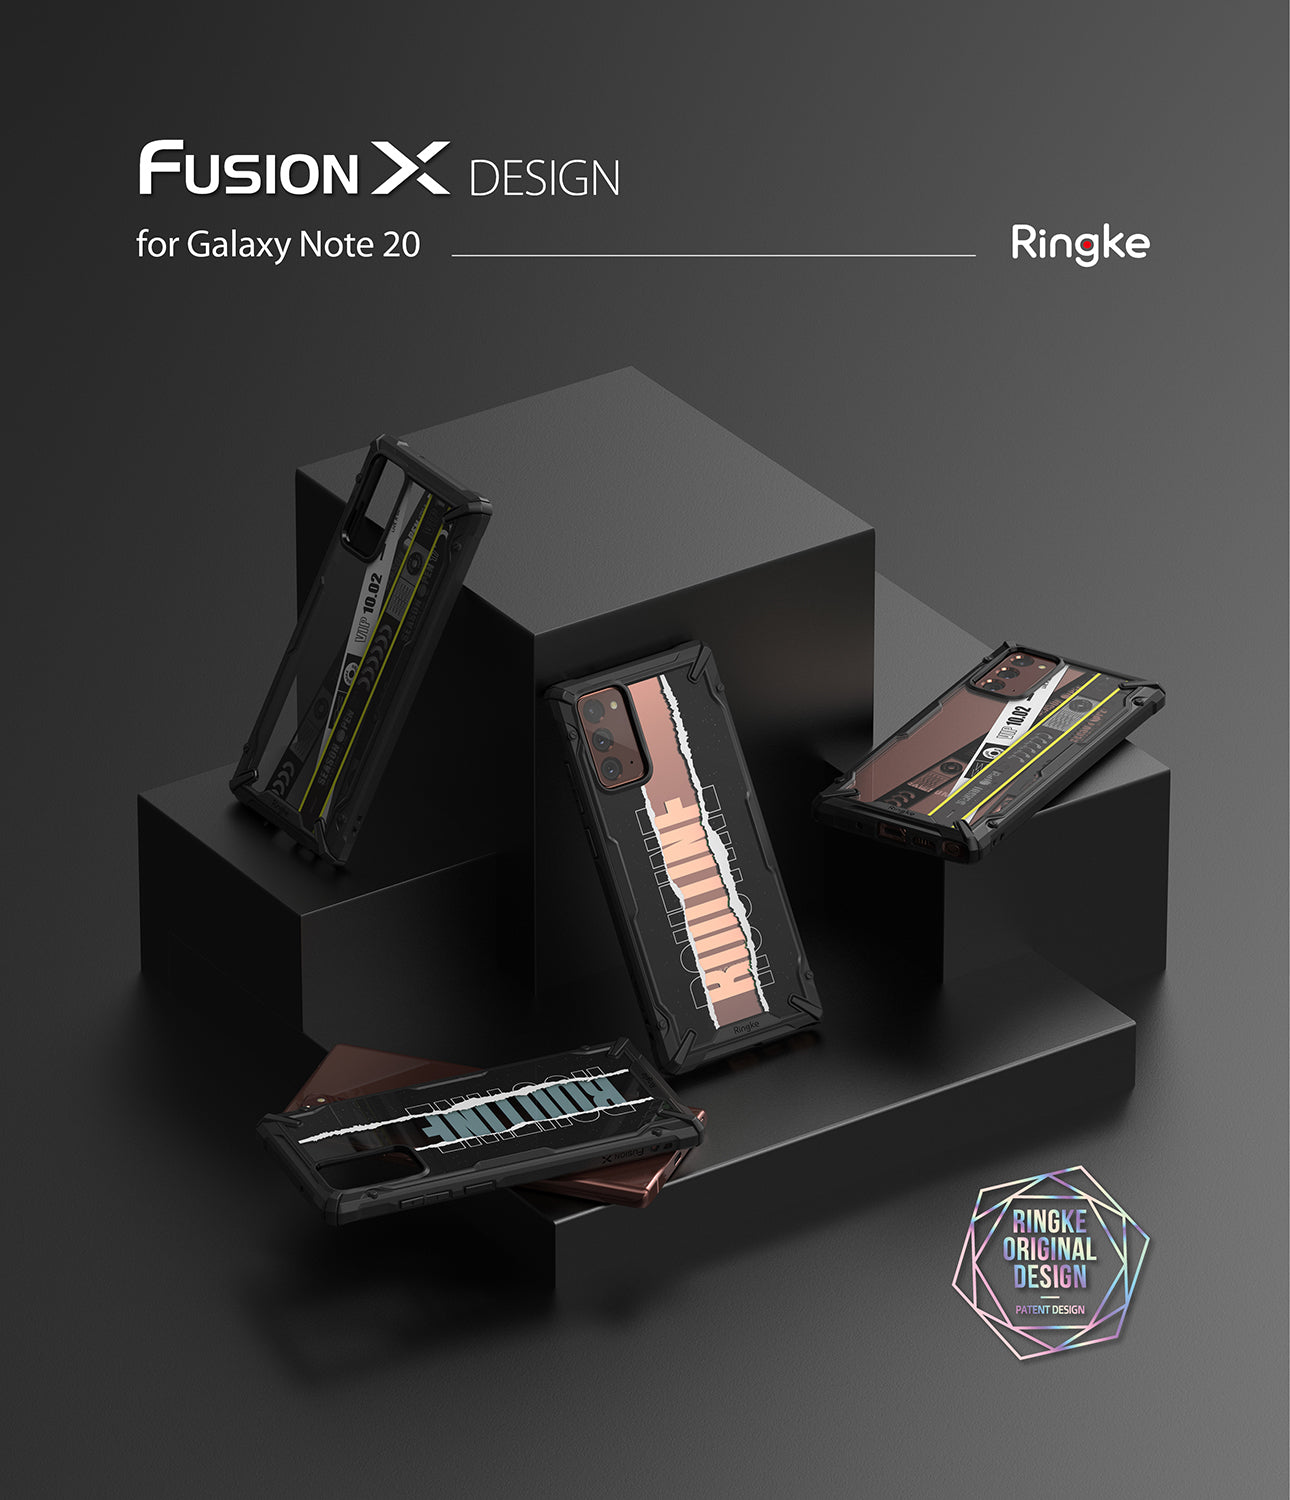 galaxy fusion-x design case for galaxy note 20 - routine